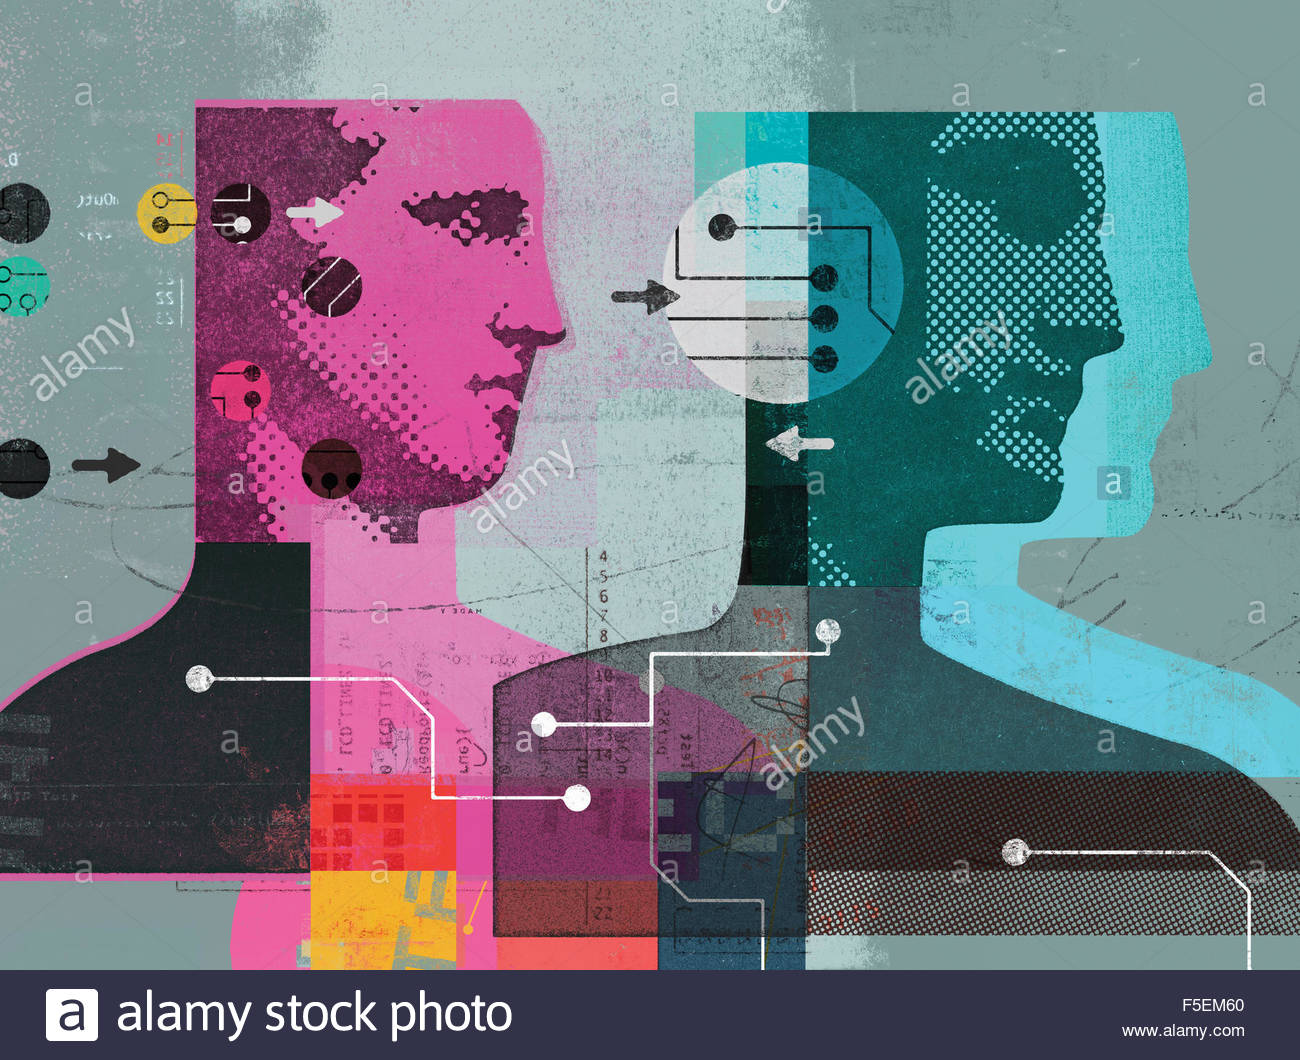 Collage of men and data connected by arrows and circuit boards - Stock Image